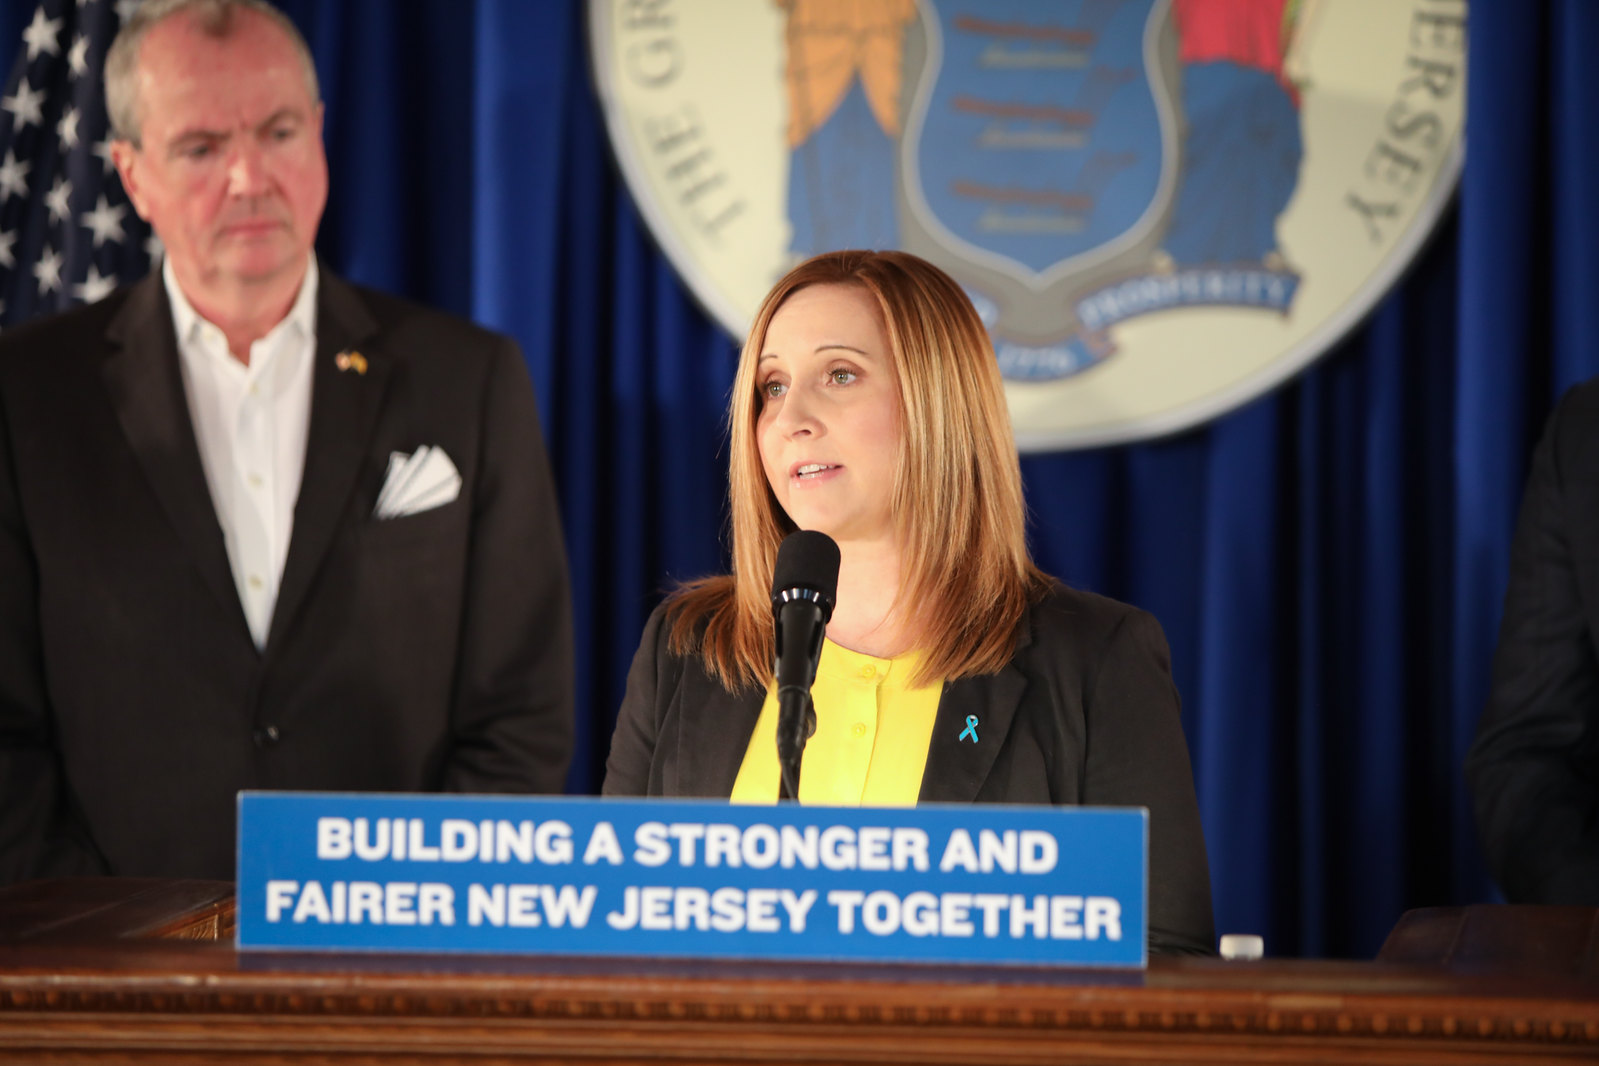 Governor Murphy, AG, DCR Director Rachel Wainer Apt, NJCASA Exec Director Patricia Teffenhart, and CSC Chair Deirdre Webster Cobb announce legislation to overhaul New Jersey's anti-workplace harassment law for public and private employers on February 18,